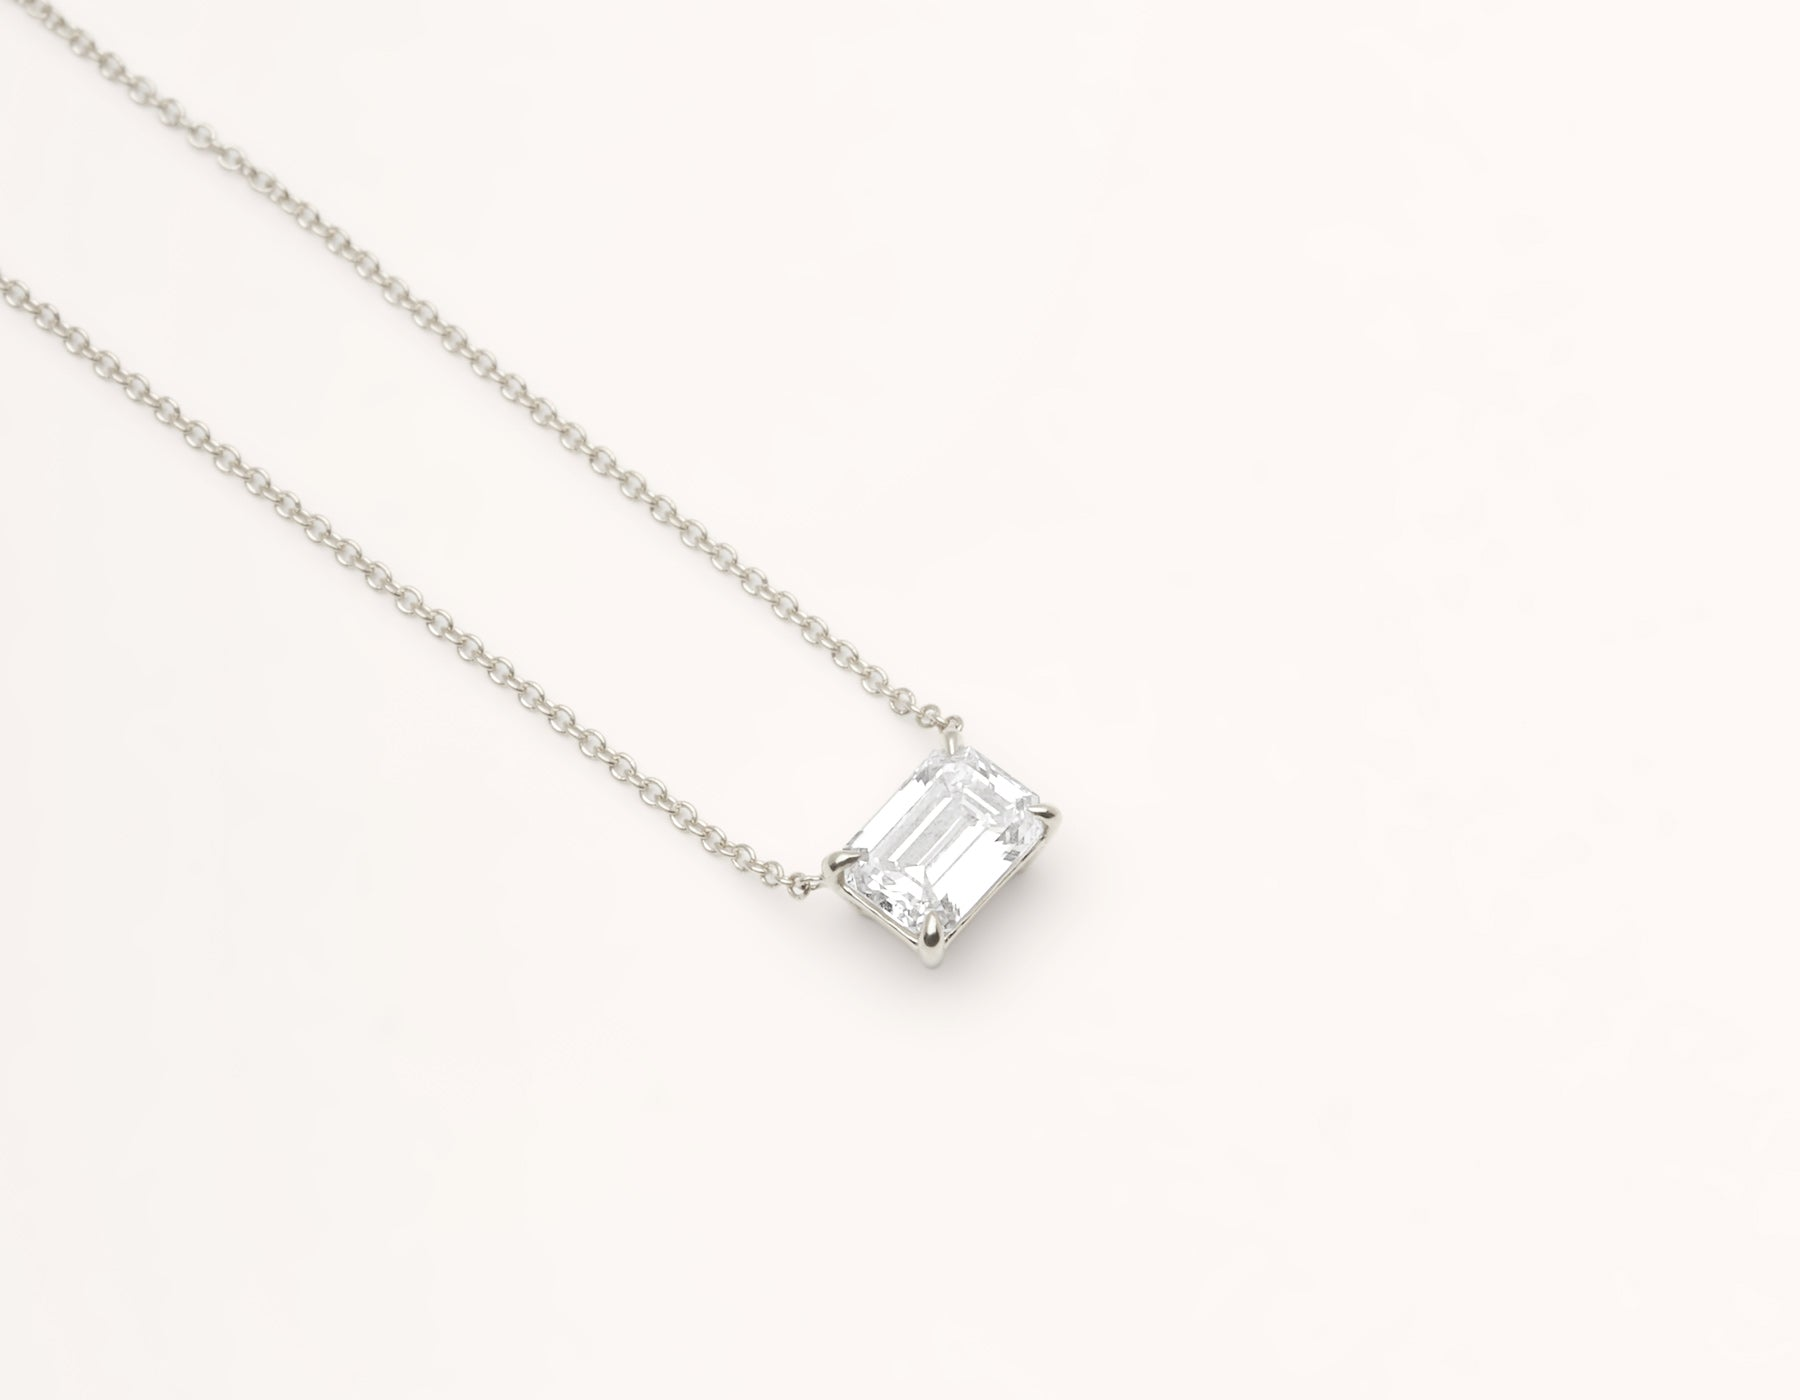 Classic minimalist 18k solid gold 1.0 carat Emerald cut Diamond Necklace on delicate chain Vrai & Oro black label, 18K White Gold